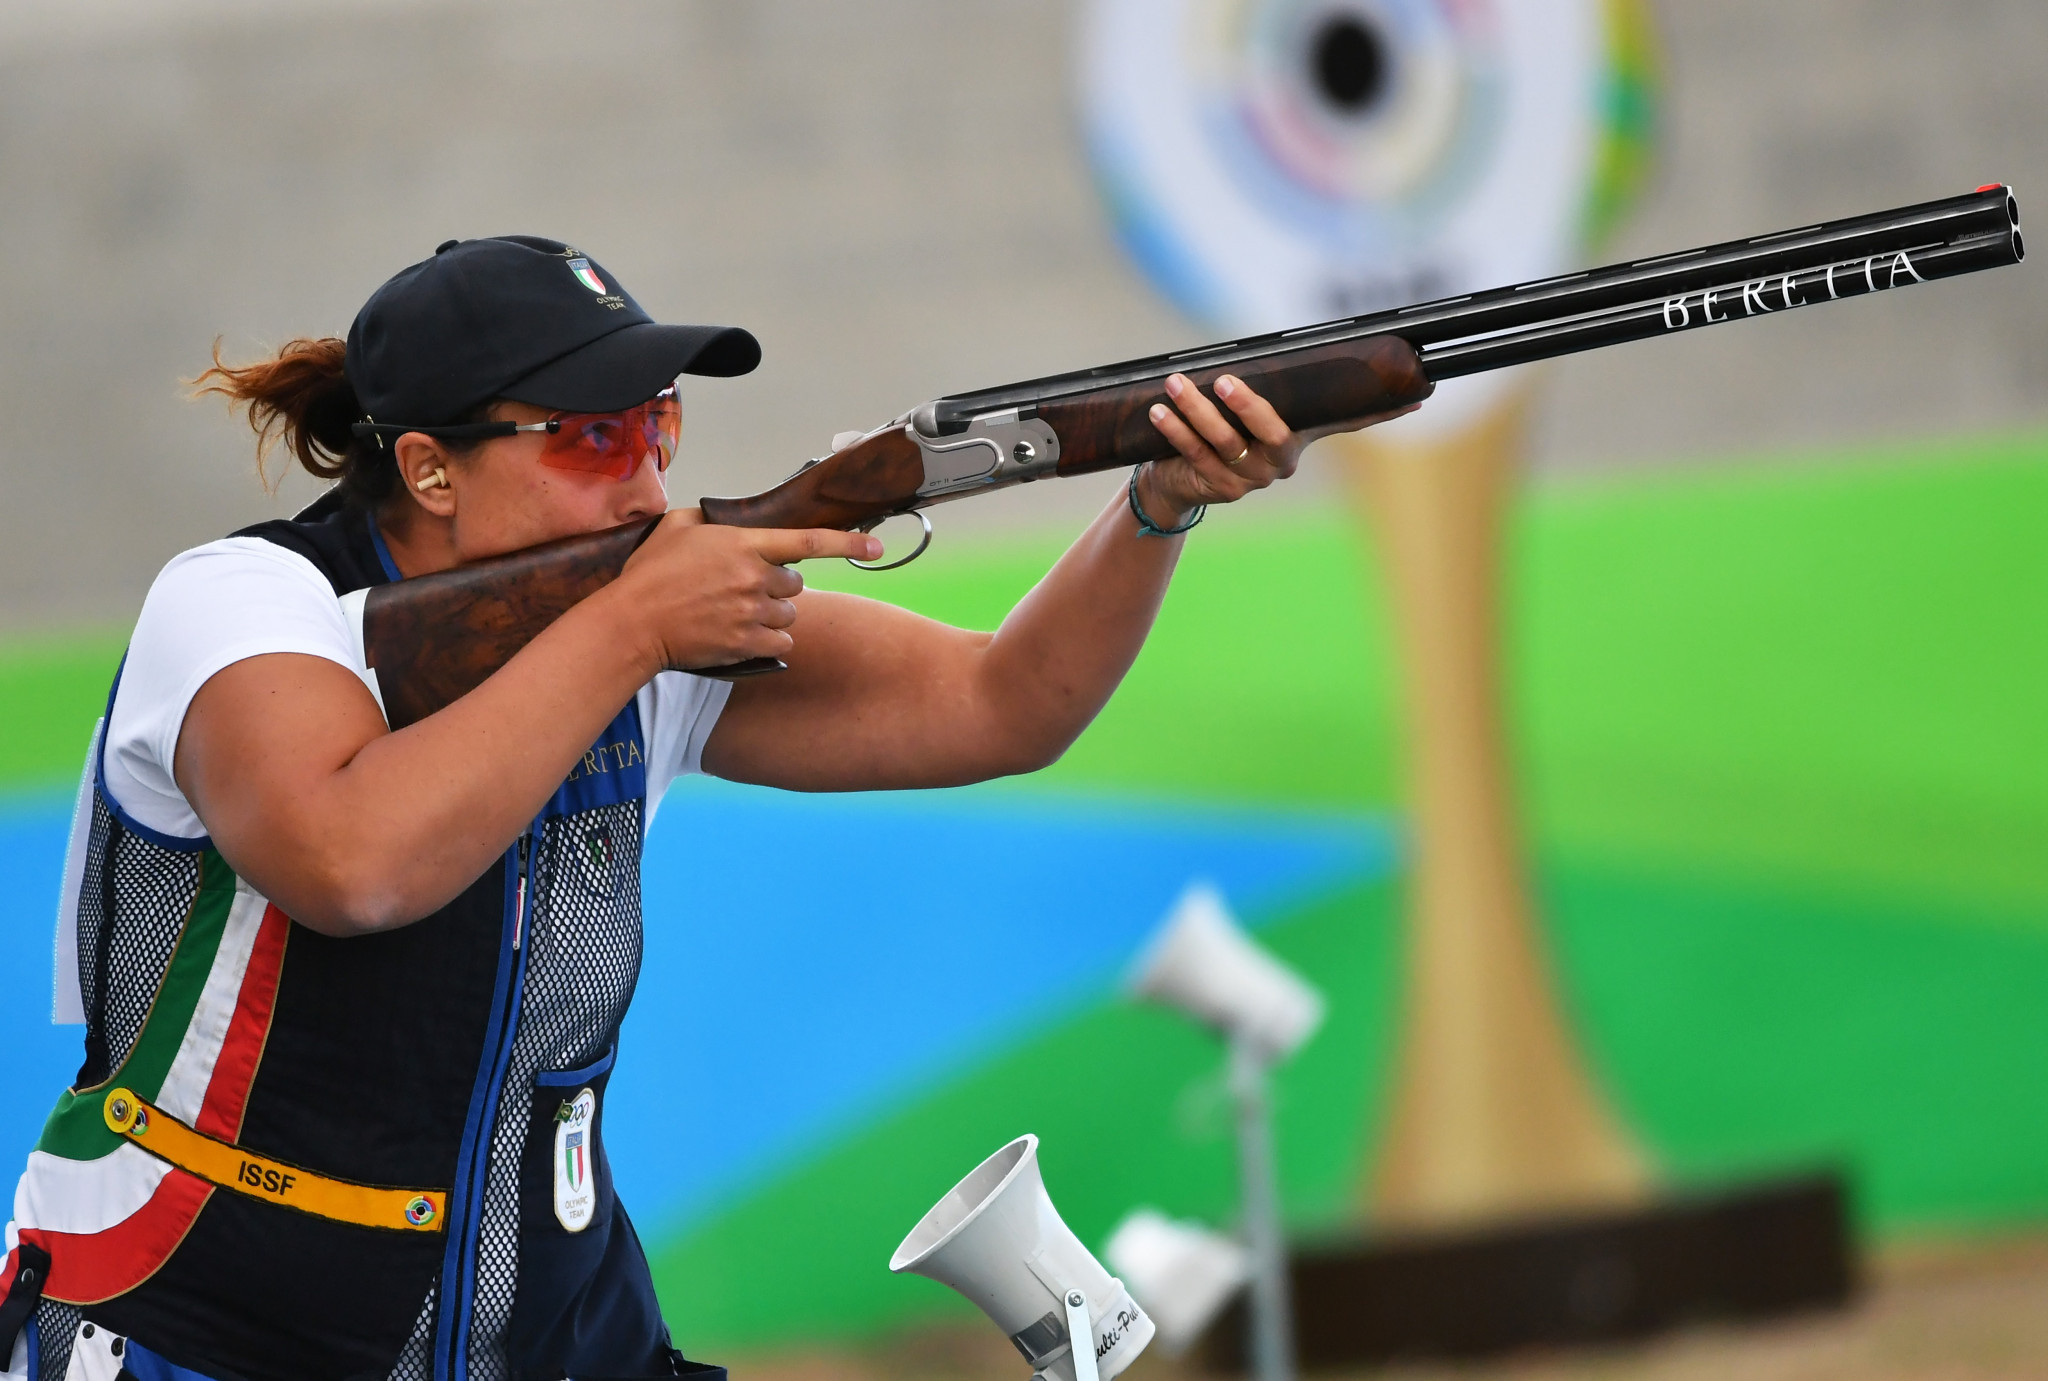 Olympic champions combine to win mixed skeet gold for Italy at ISSF World Shotgun Championship